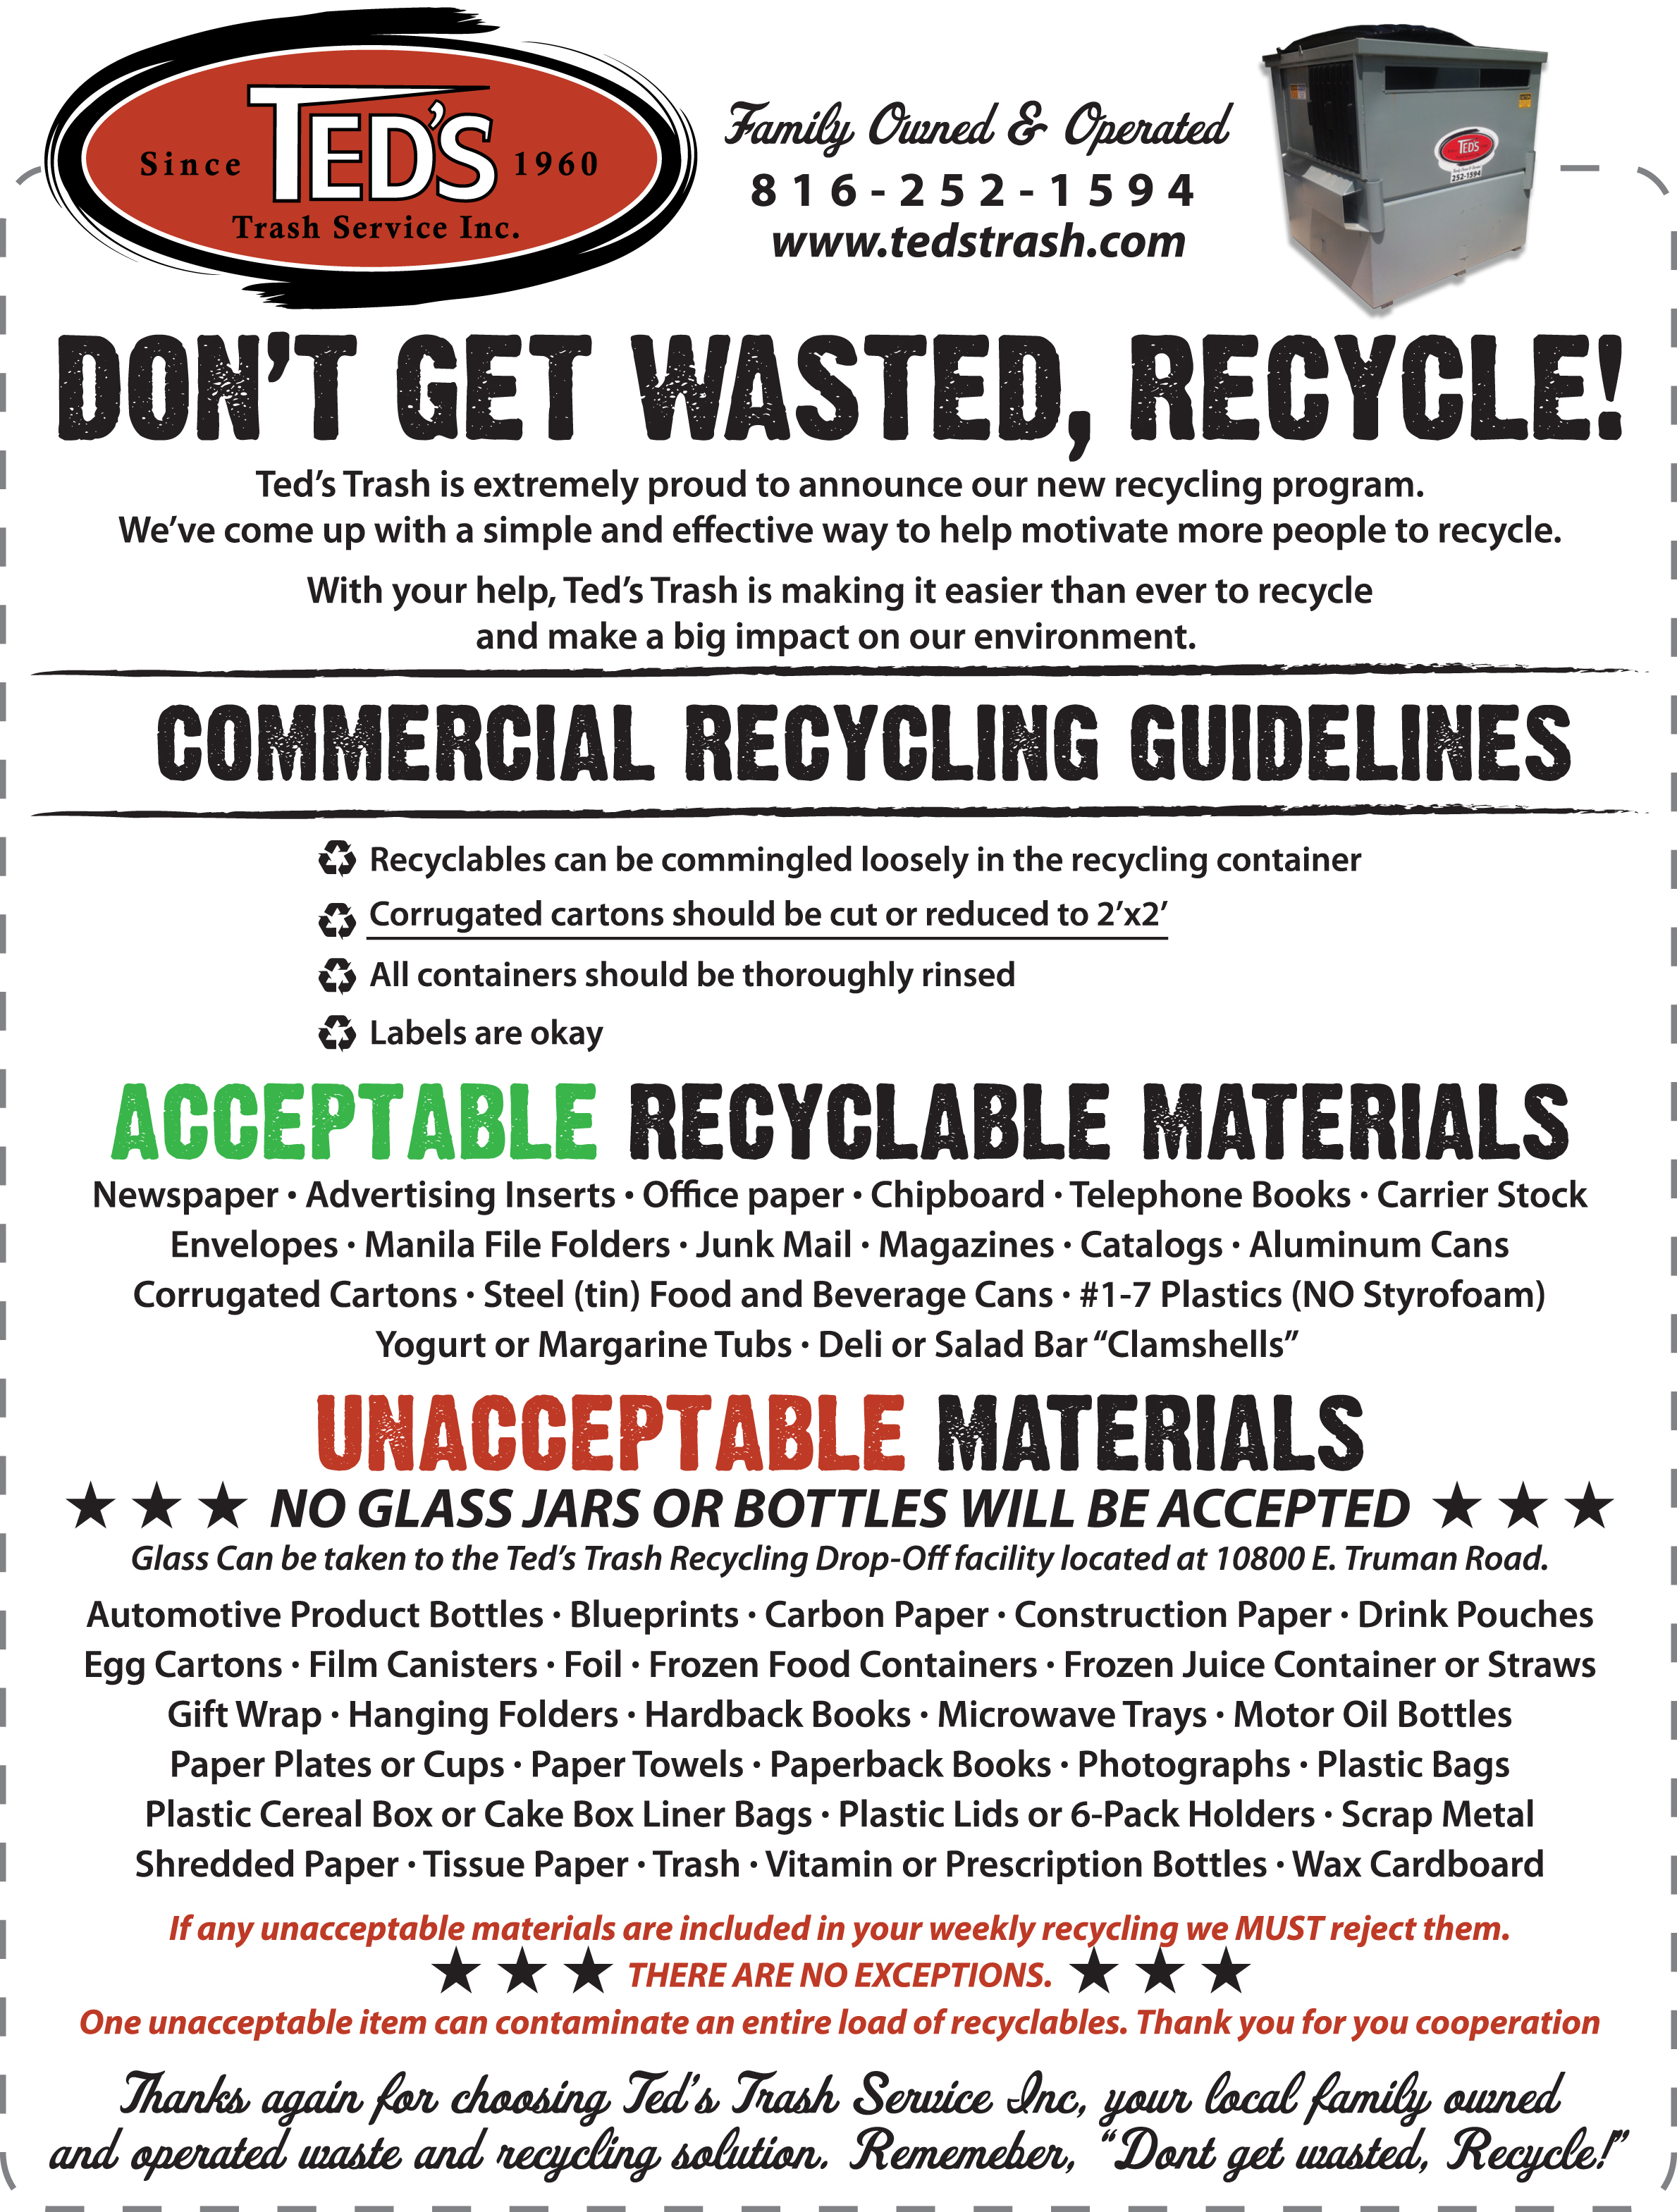 Recycle Facility Information  sc 1 st  Ted\u0027s Trash Service Inc. & Recycle \u2013 Ted\u0027s Trash Service Inc.